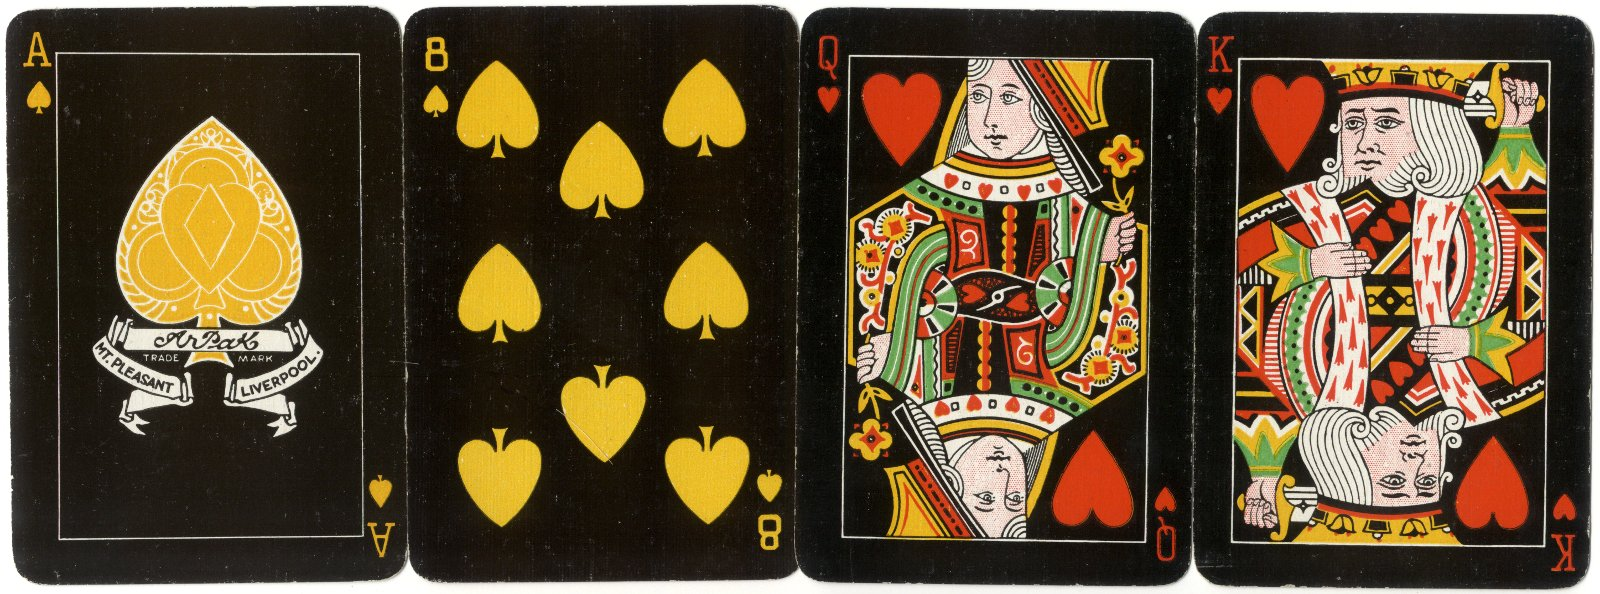 The Arpak No-Revoke playing cards, 24 Mount Pleasant, Liverpool, c.1927-35, small indices